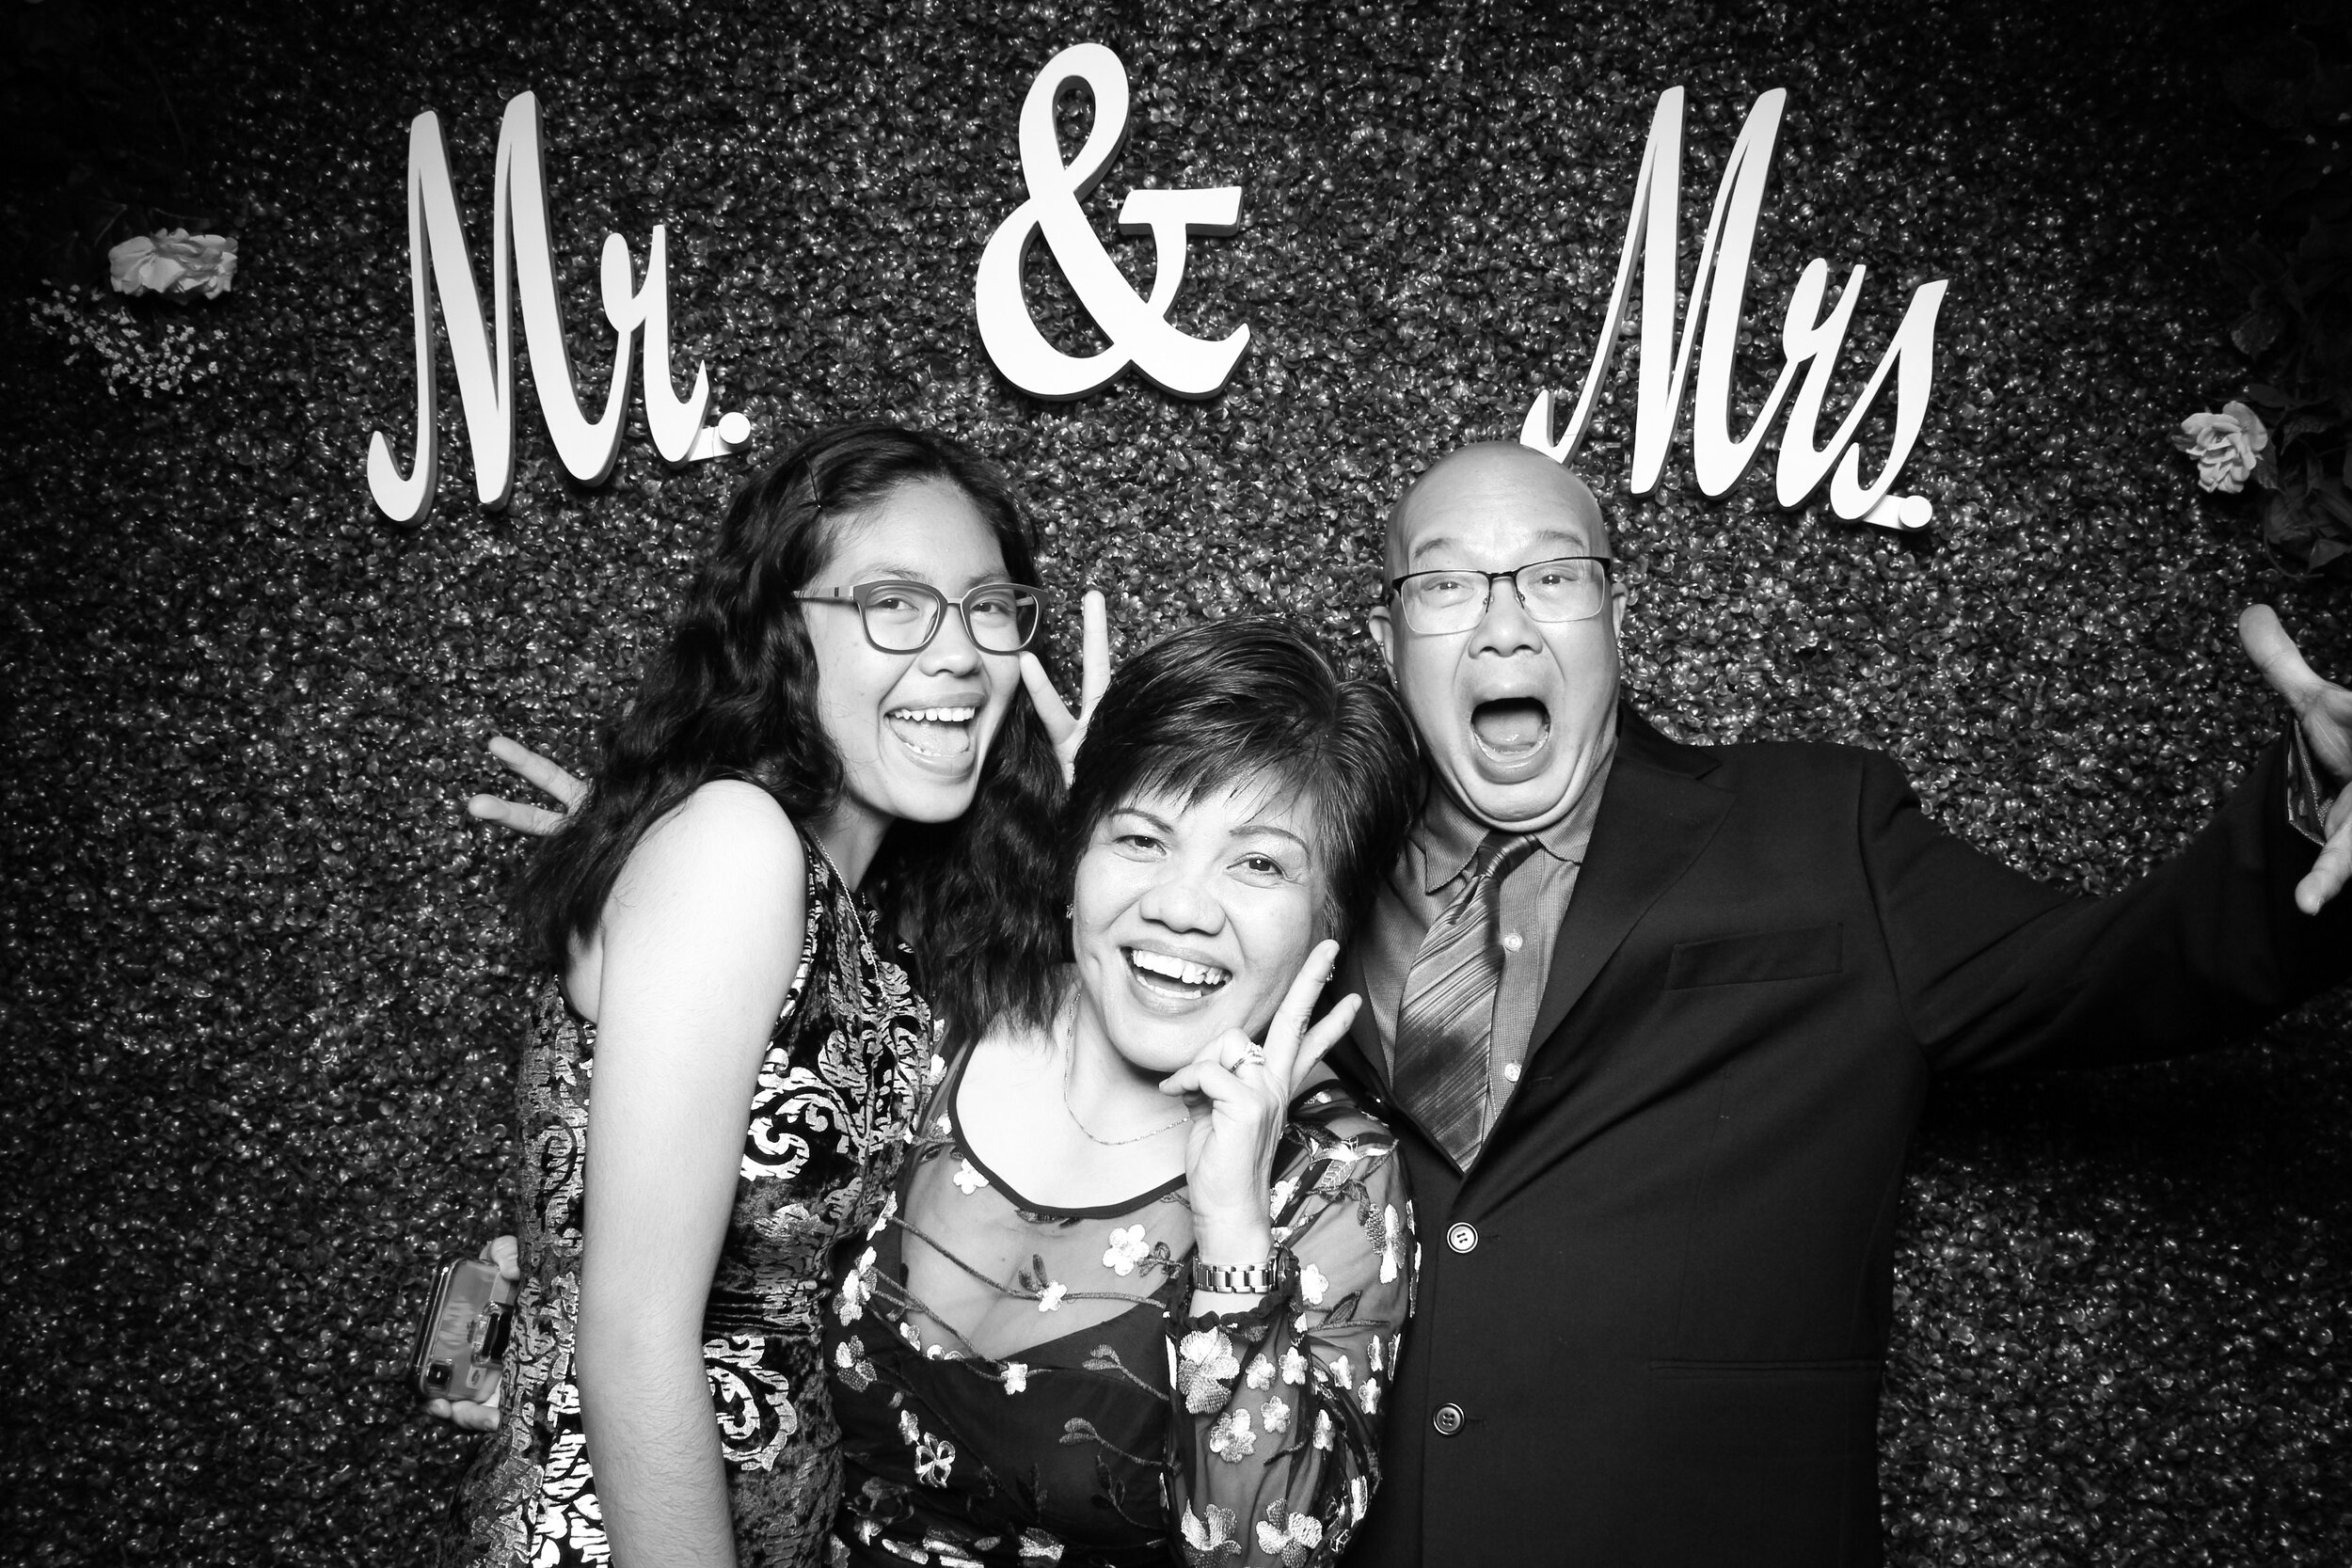 Green_Hedge_Ivy_Wall_Backdrop_Photo_Booth_Rental_Chicago_10.jpg